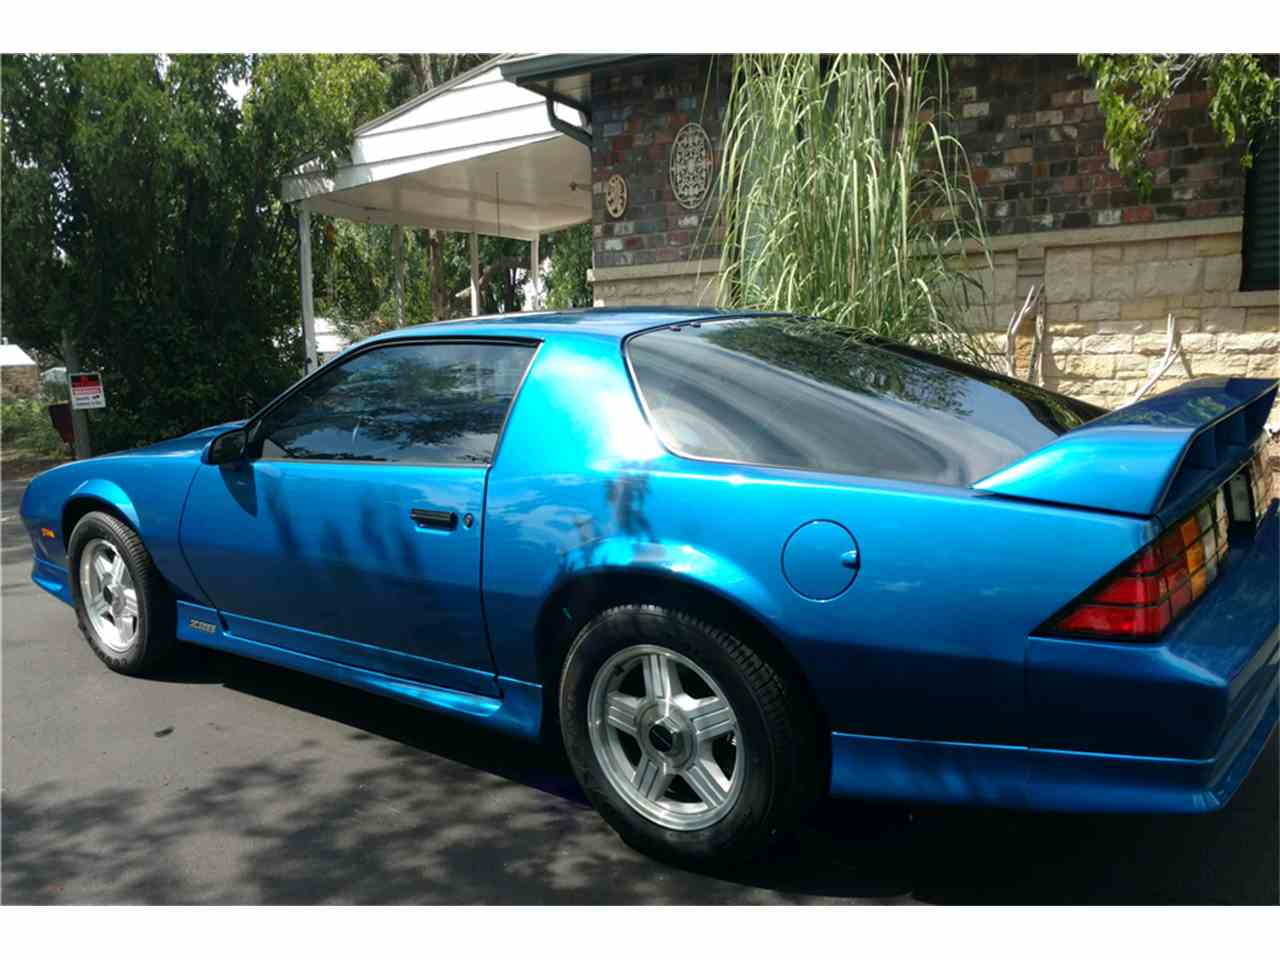 1992 Chevrolet Camaro Z28 For Sale Classiccars Com Cc